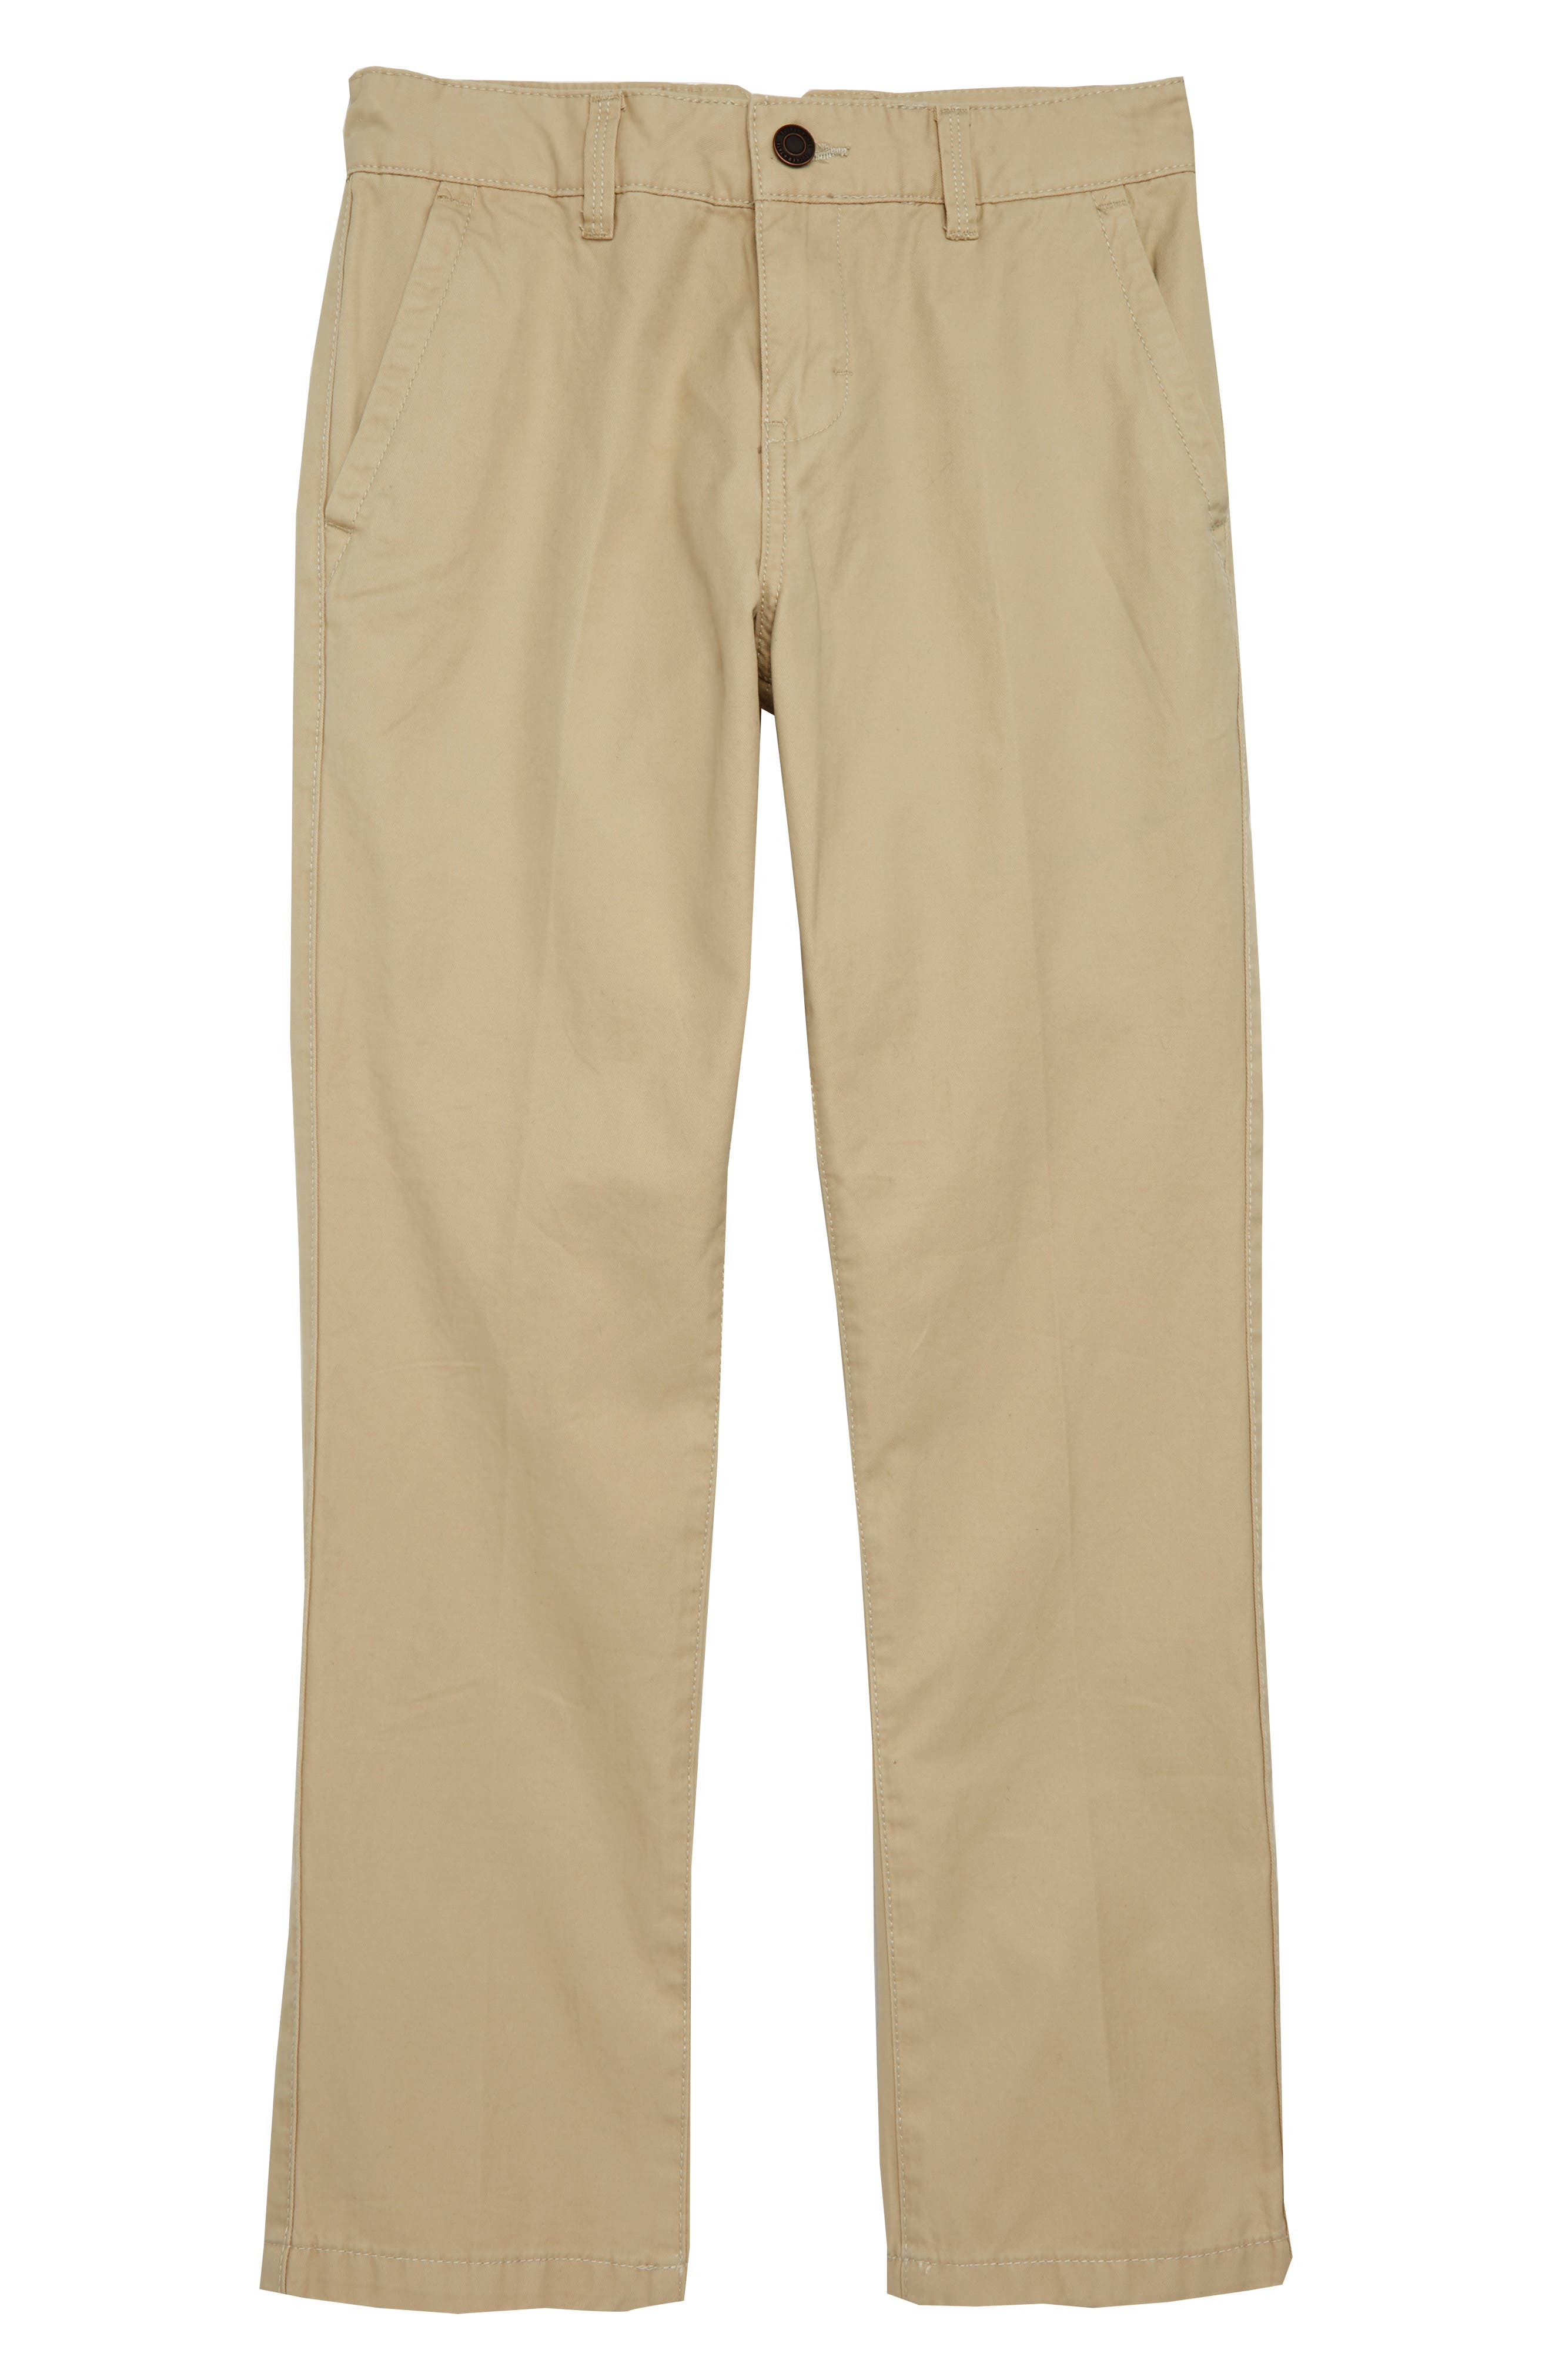 Chino Pants,                             Main thumbnail 1, color,                             Tan Stock